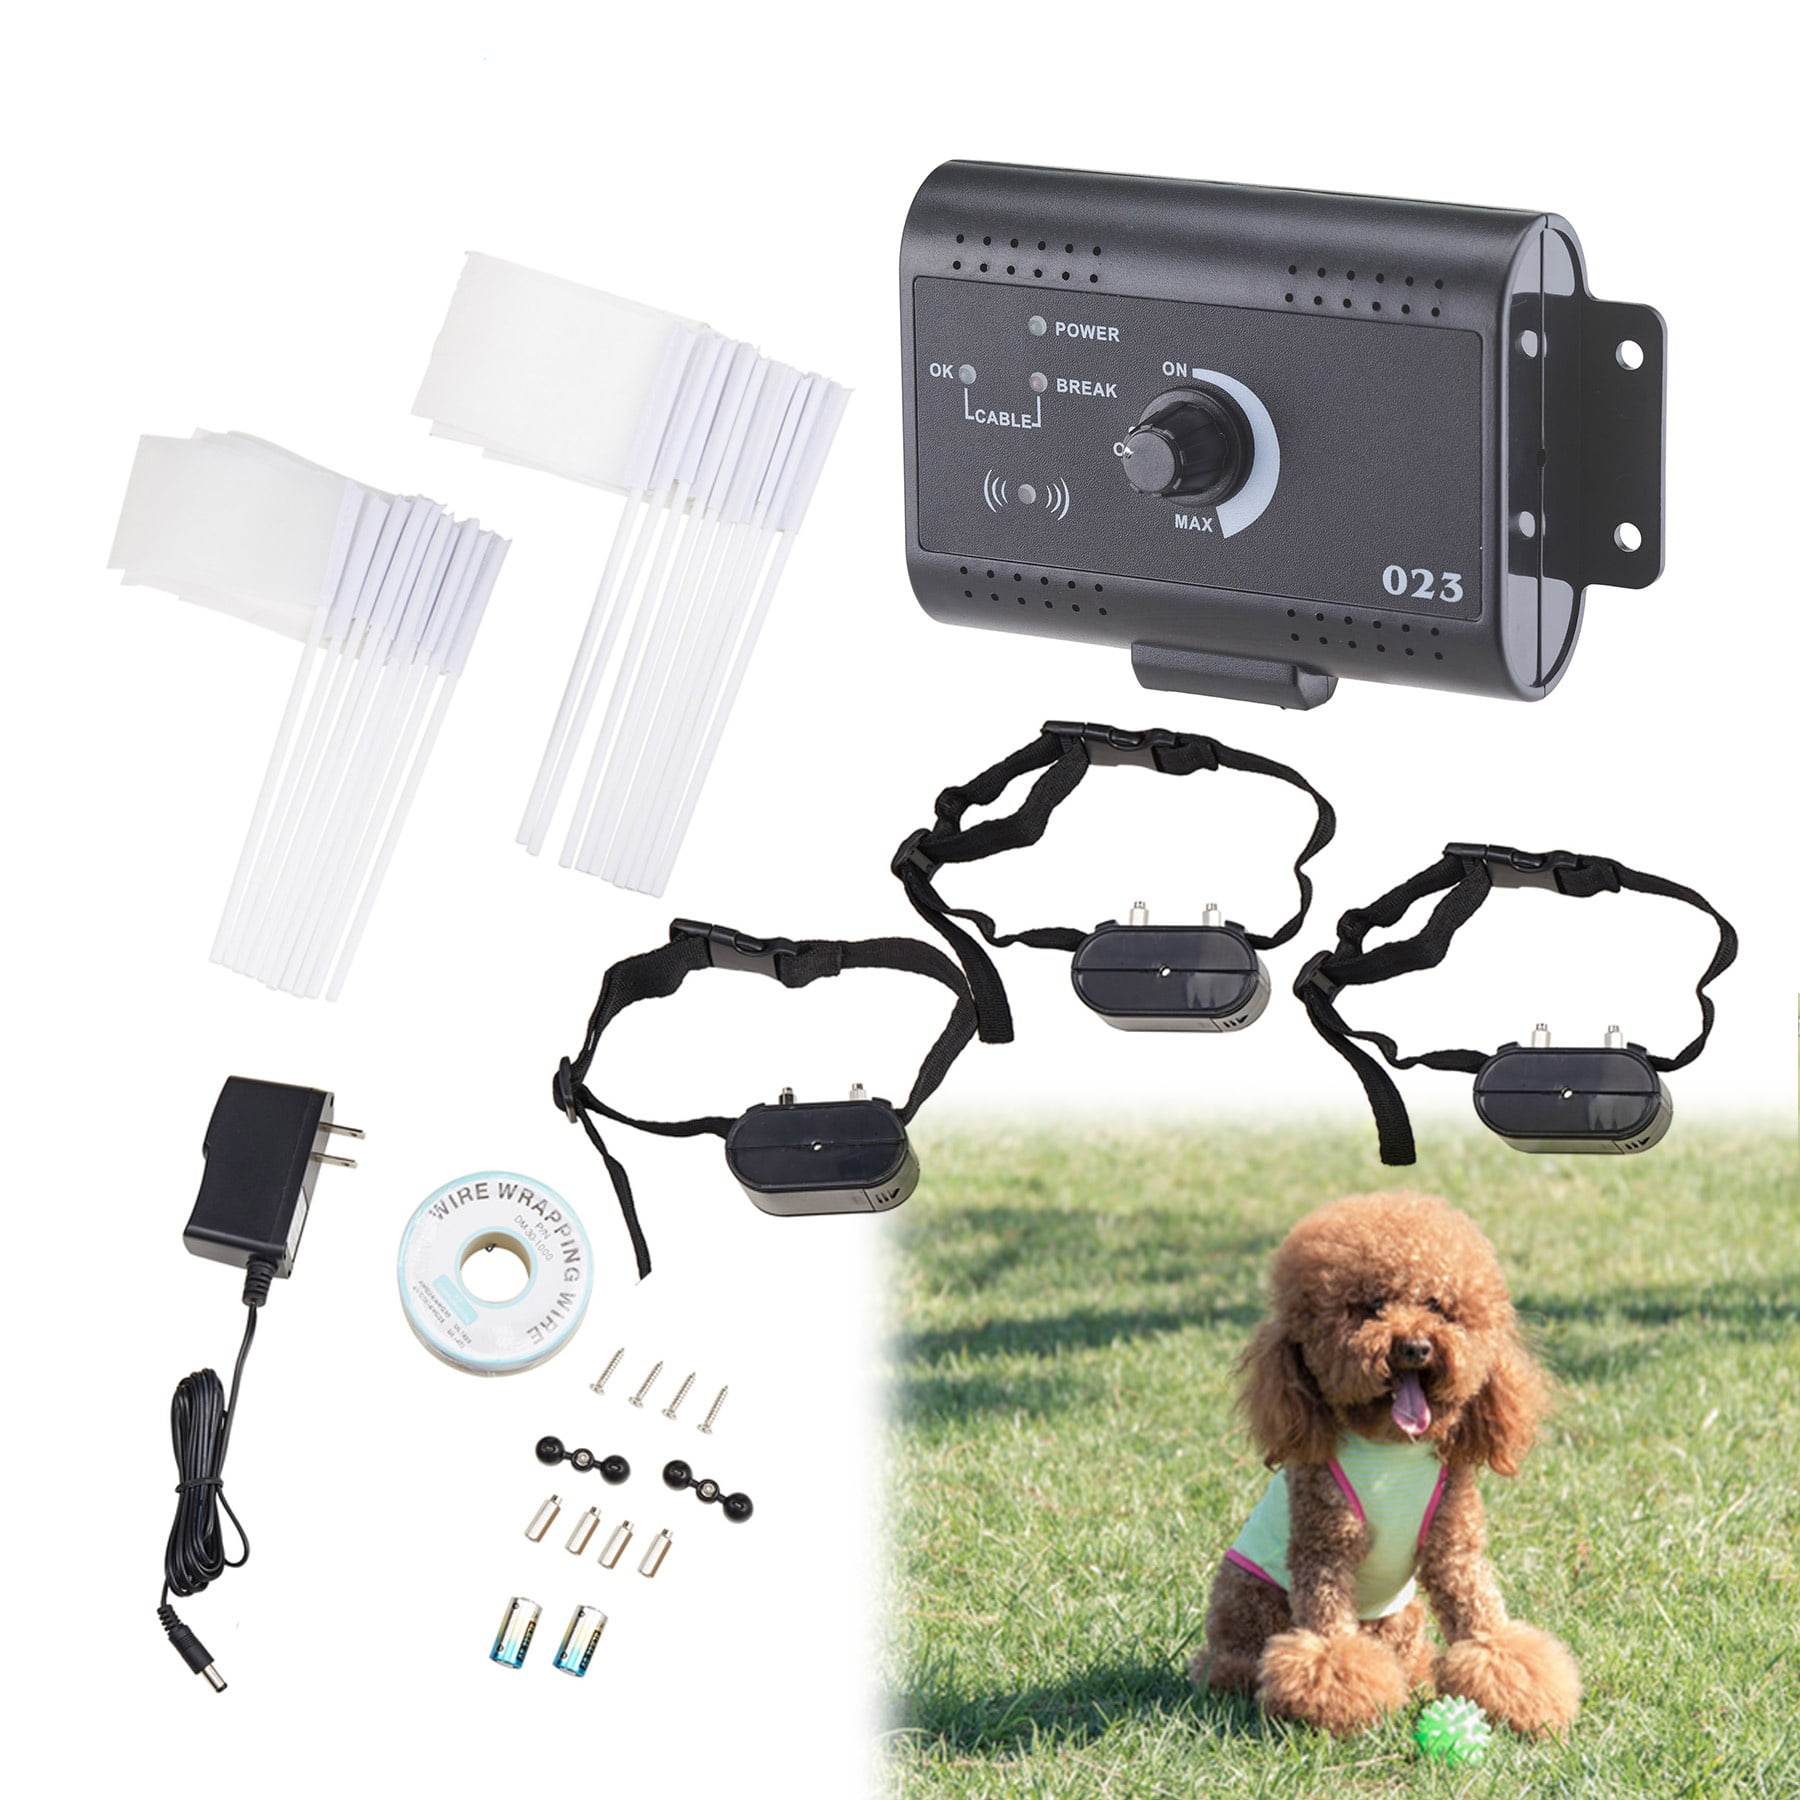 2 OR 3 Dogs Underground Electric Dog Fence Waterproof Shock Collars by CO-Z